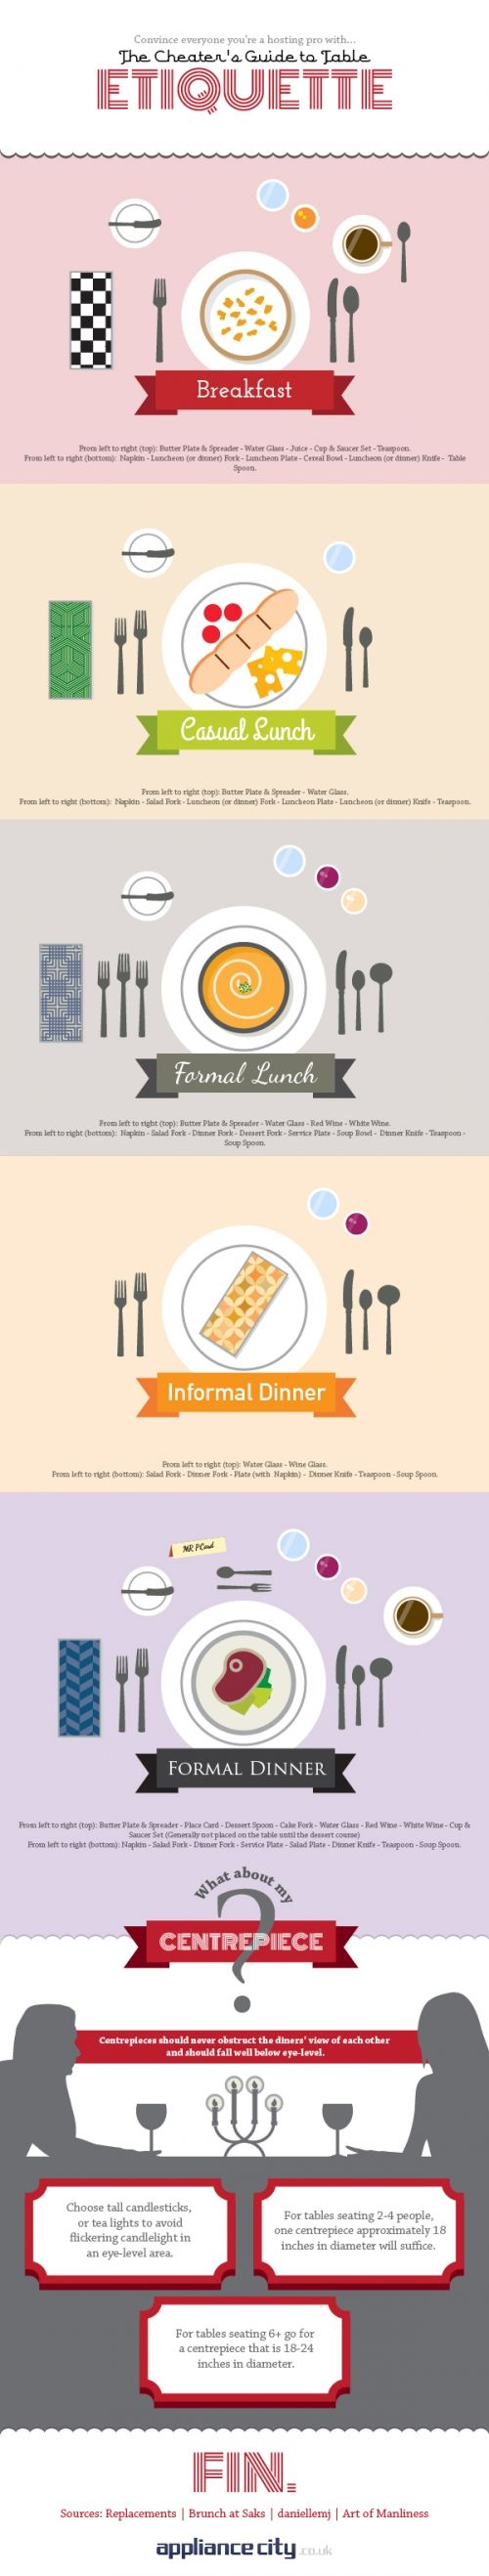 #Infographic:The Importance of Table Etiquette for Impressing Guests  Tips / Great ...